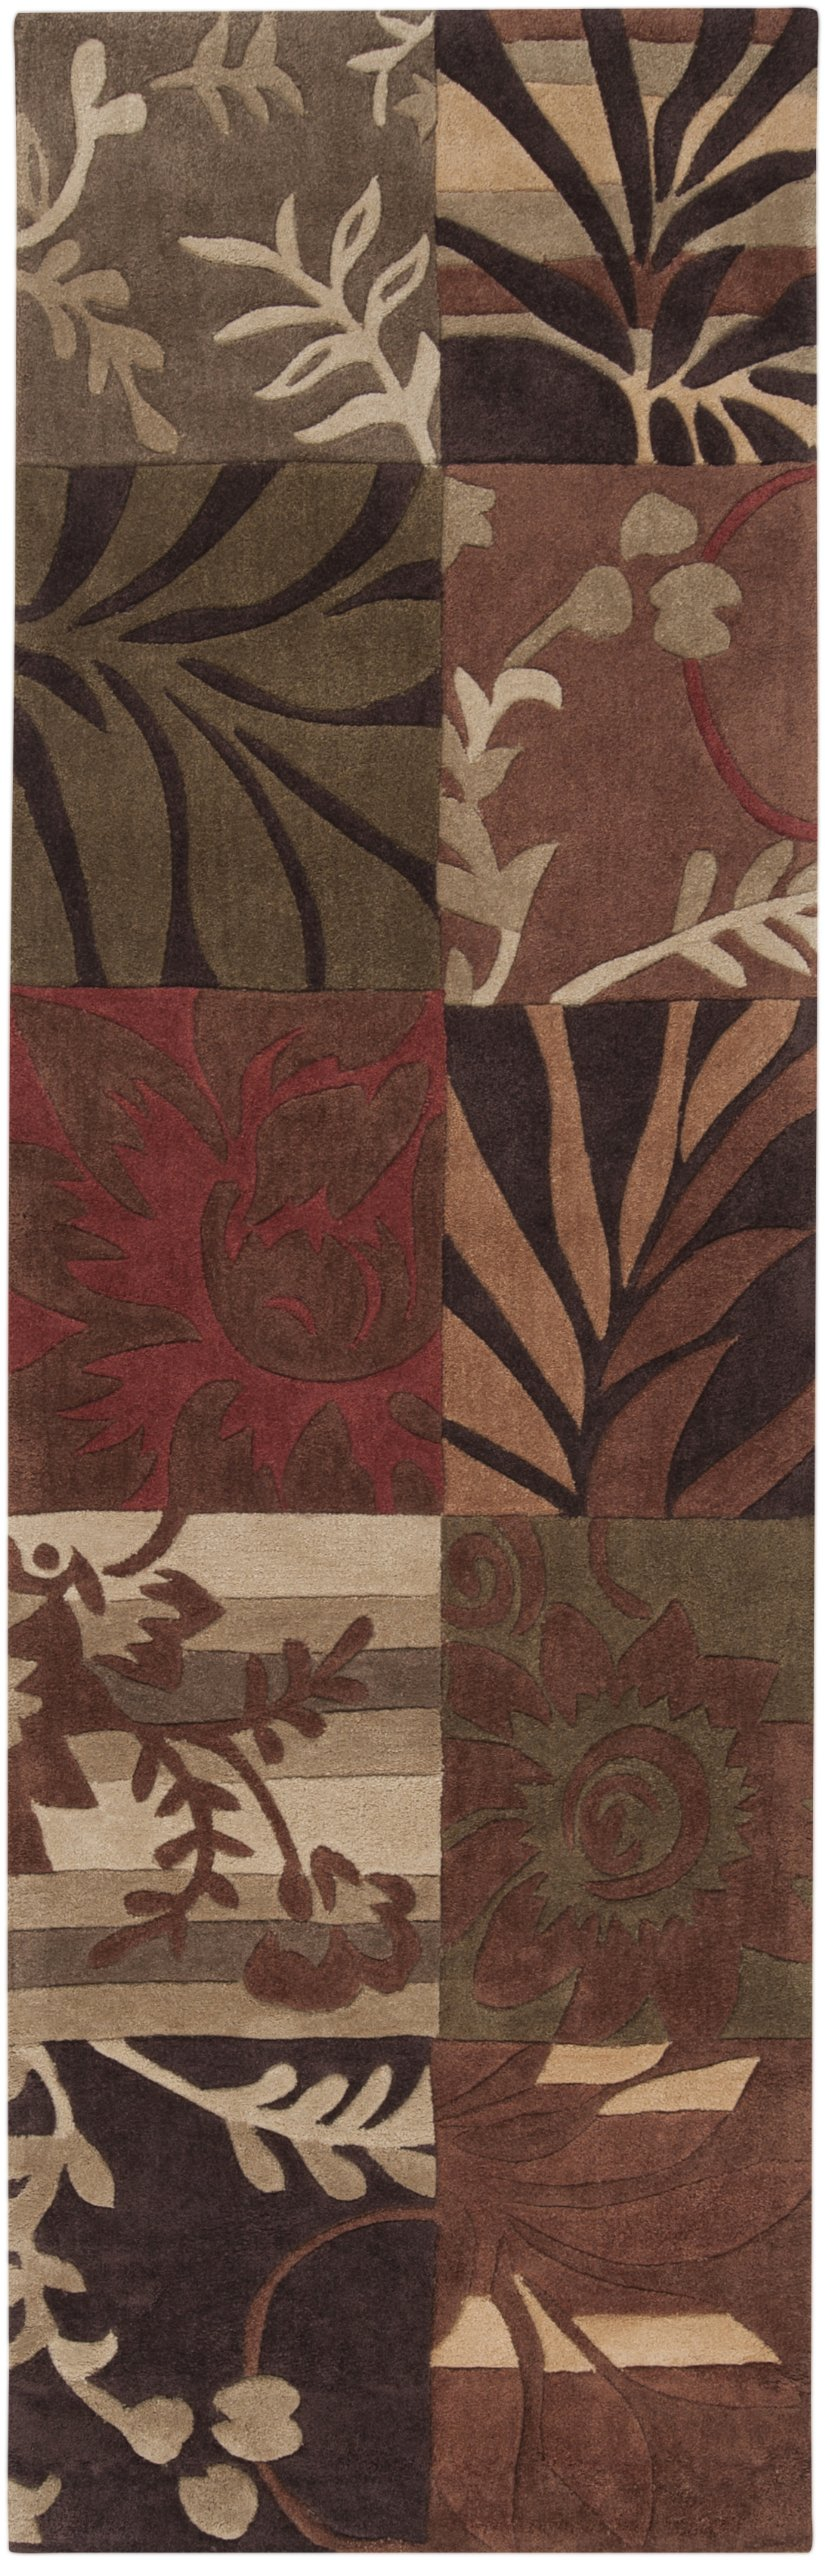 Surya Cosmopolitan COS-8818 Transitional Hand Tufted 100% Polyester Burnt Sienna 2'6'' x 8' Floral Runner